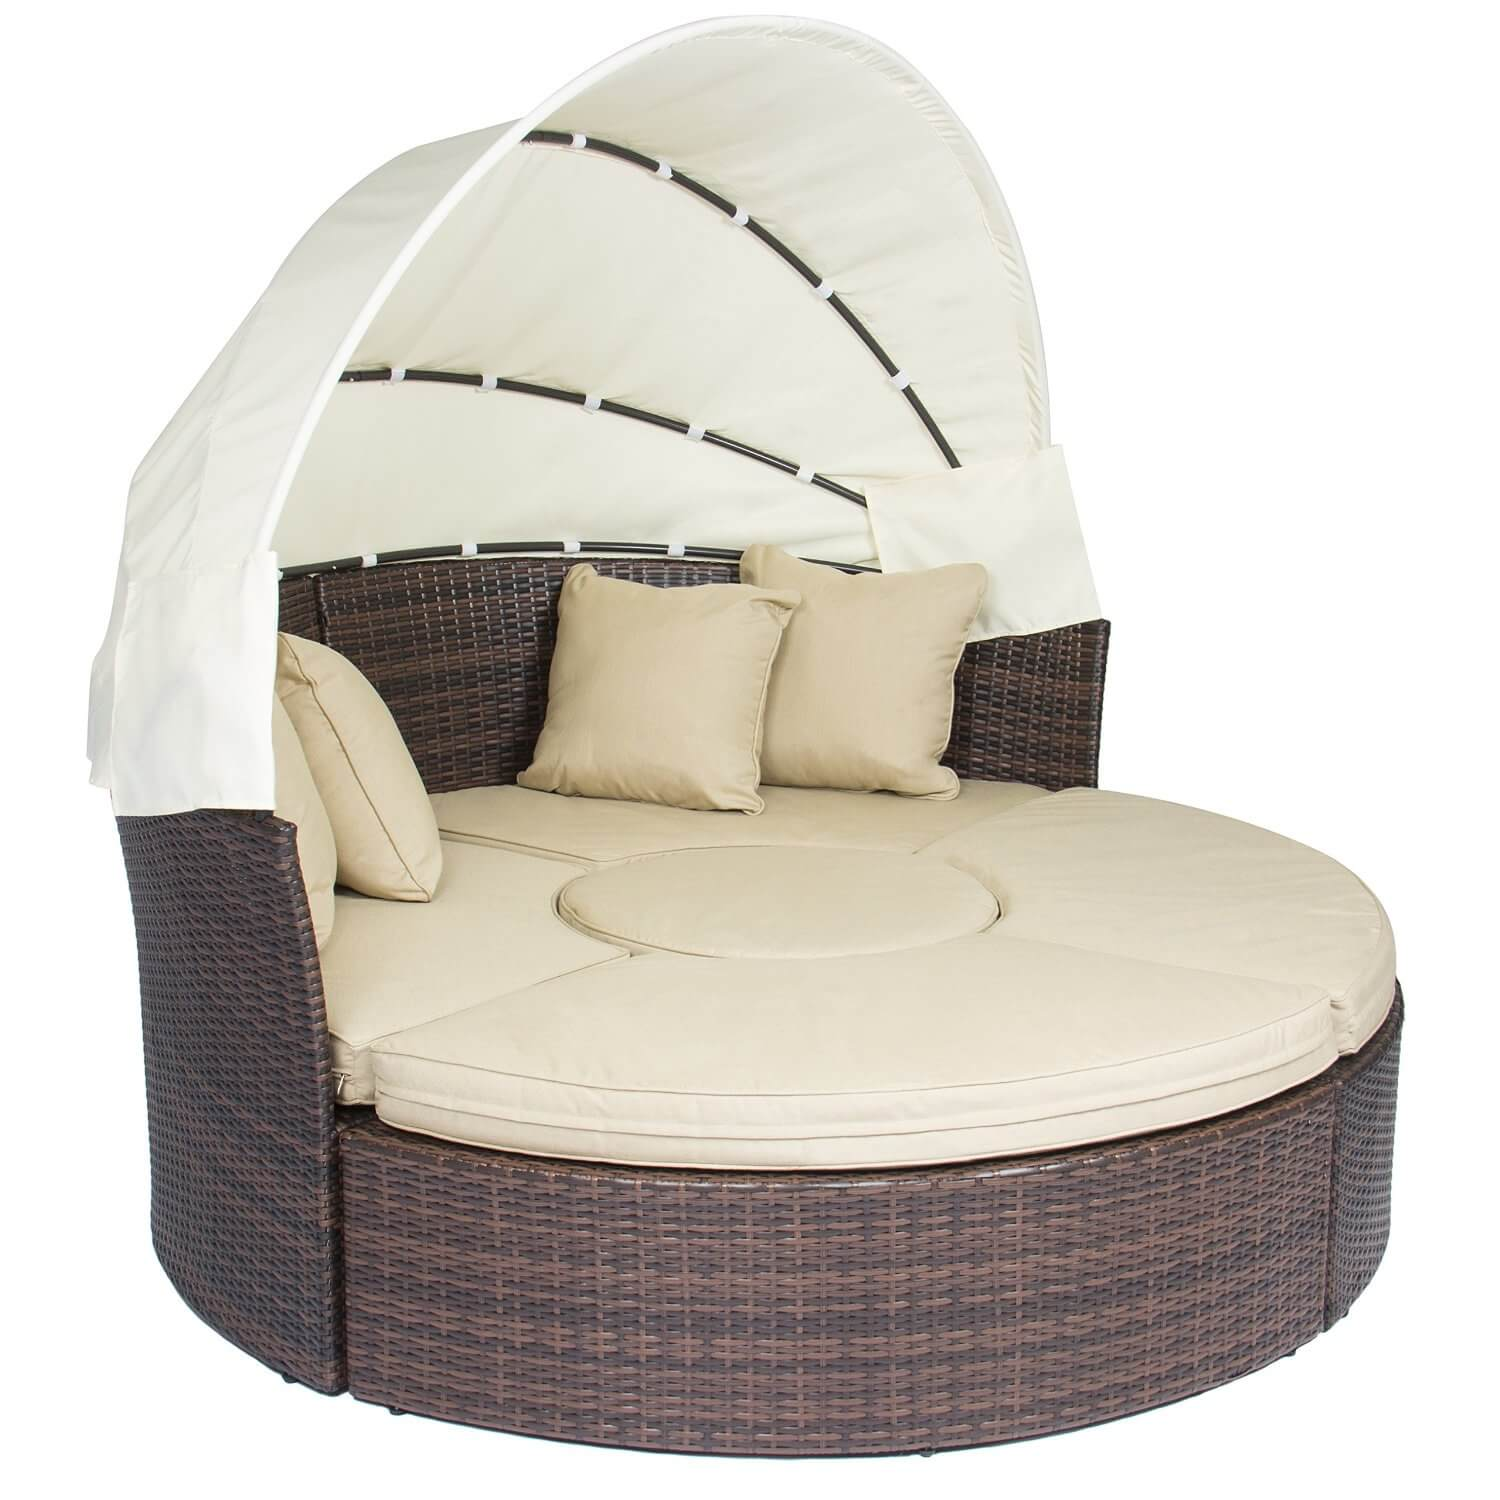 Retractable Canopy Wicker Sofa